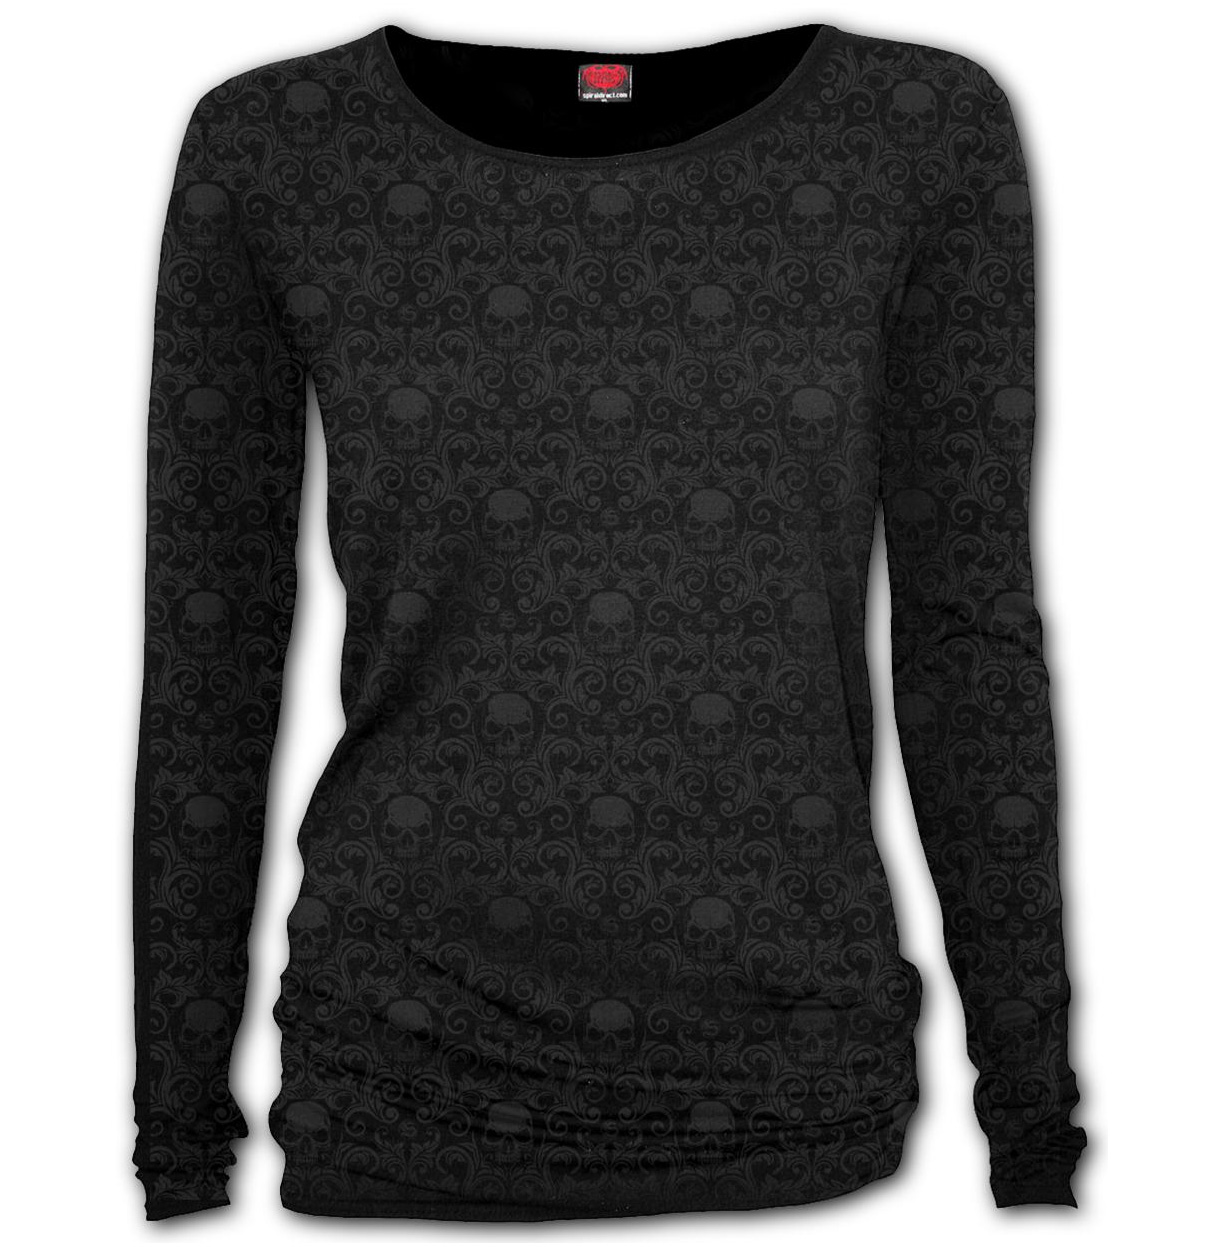 Spiral-Gothic-Elegance-Ladies-Blk-Goth-Scroll-IMPRESSION-L-Sleeve-Top-All-Sizes thumbnail 7